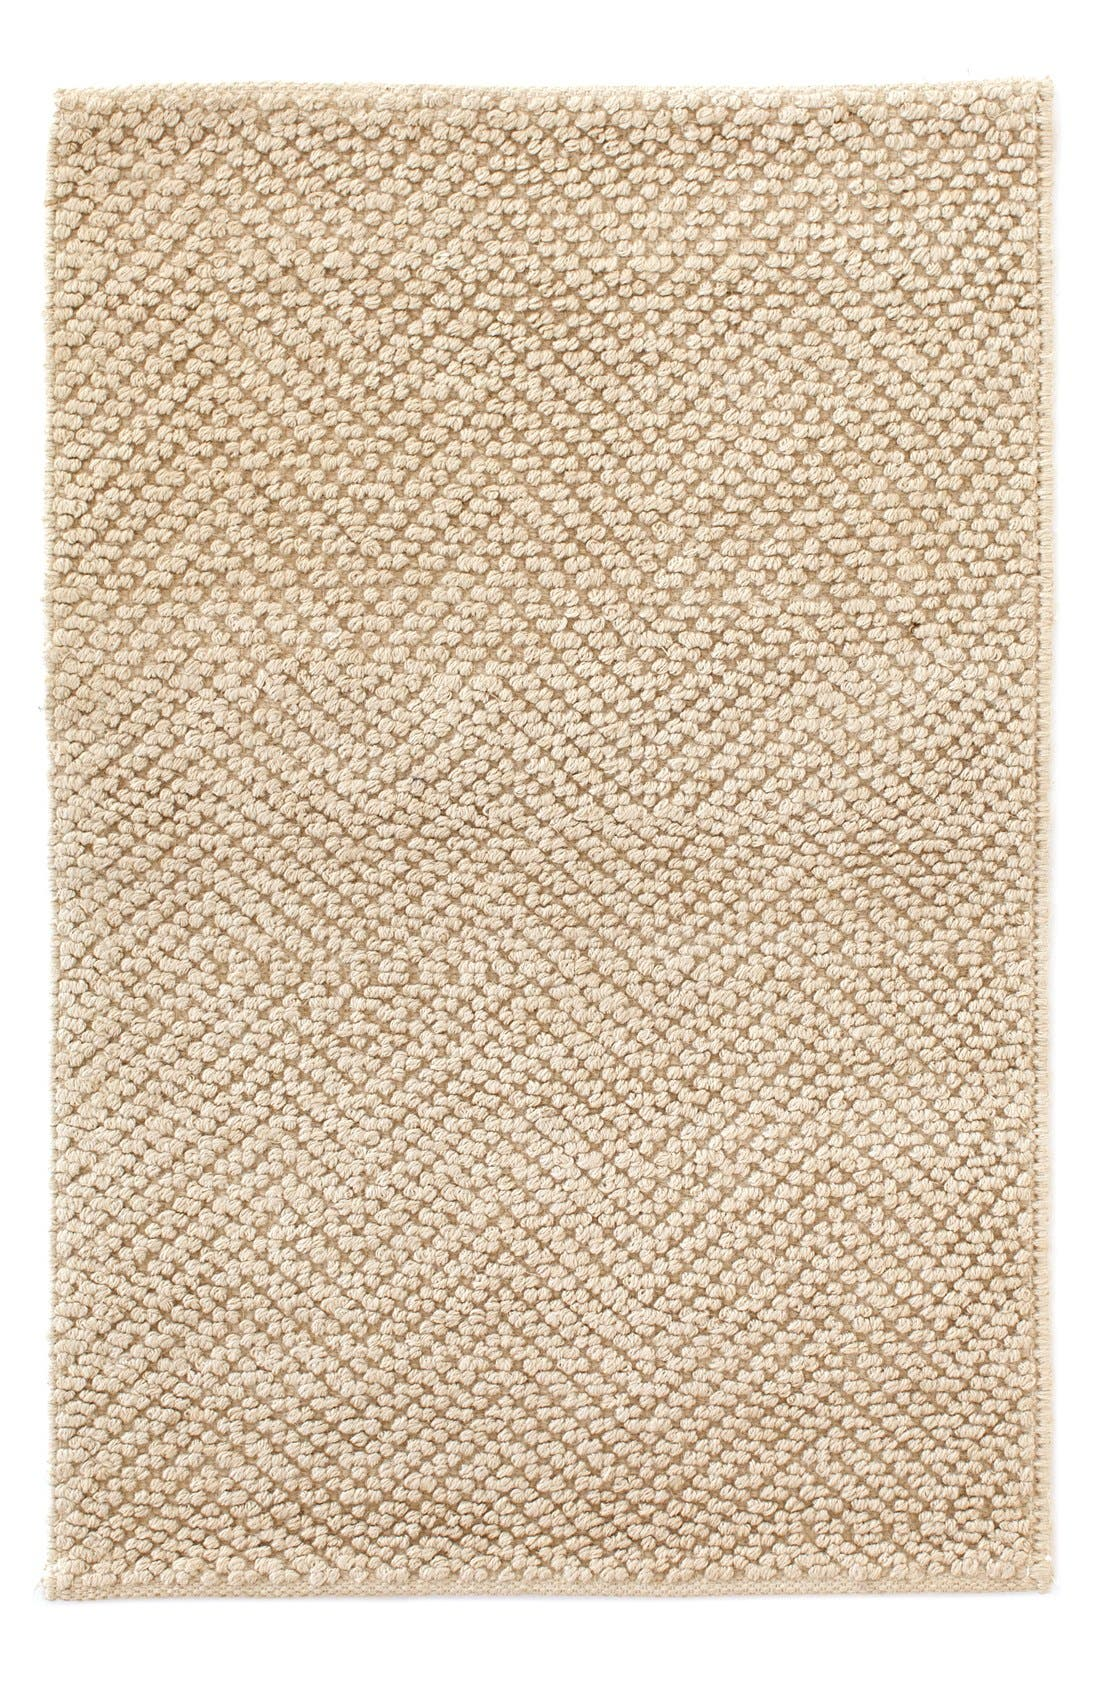 Alternate Image 1 Selected - Dash & Albert Woven Jute & Cotton Rug